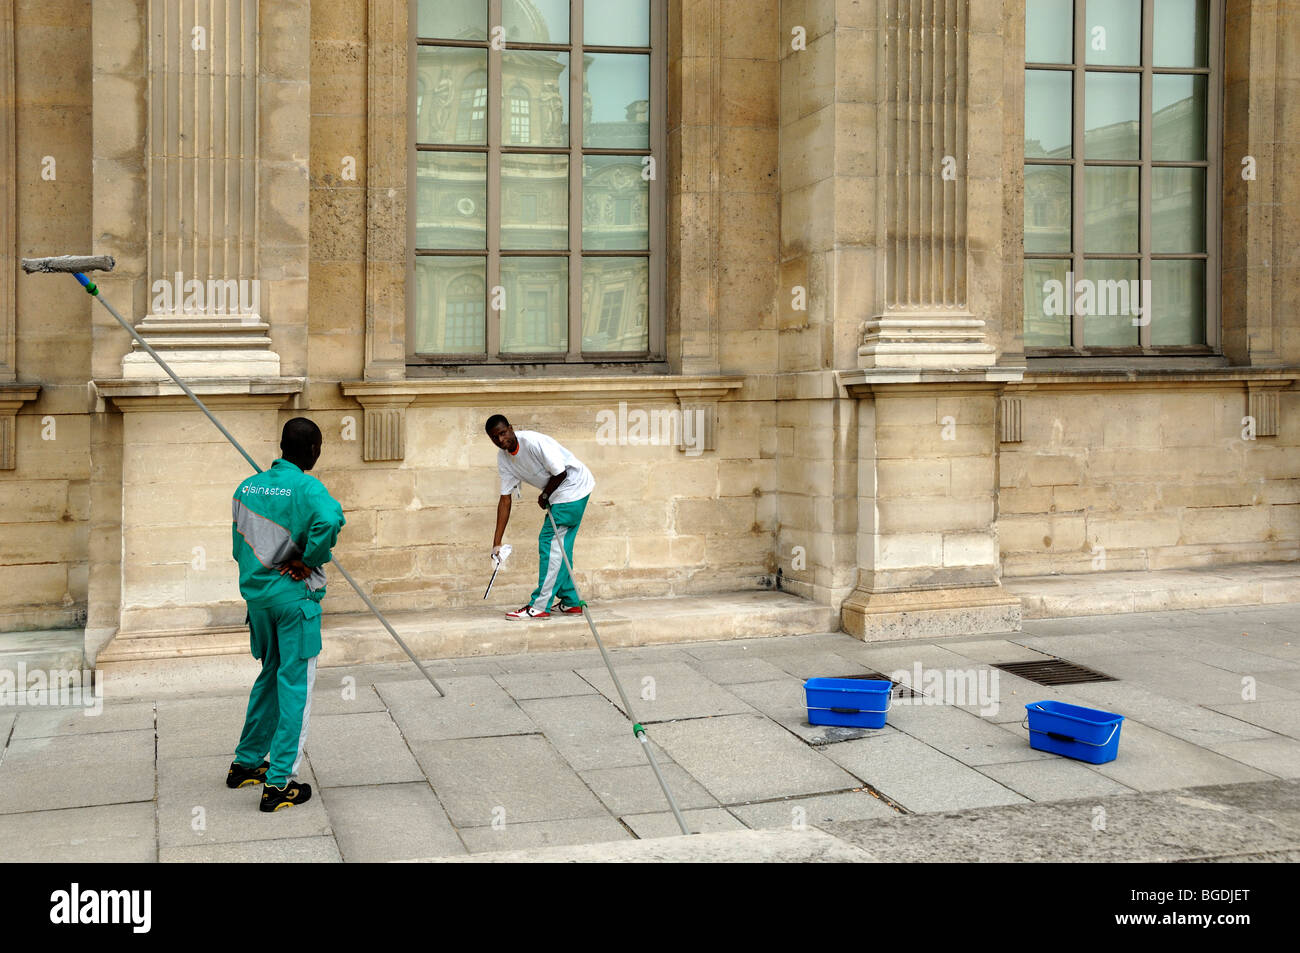 African Immigrant Workers Cleaning Windows of the Louvre Museum, Paris, France - Stock Image